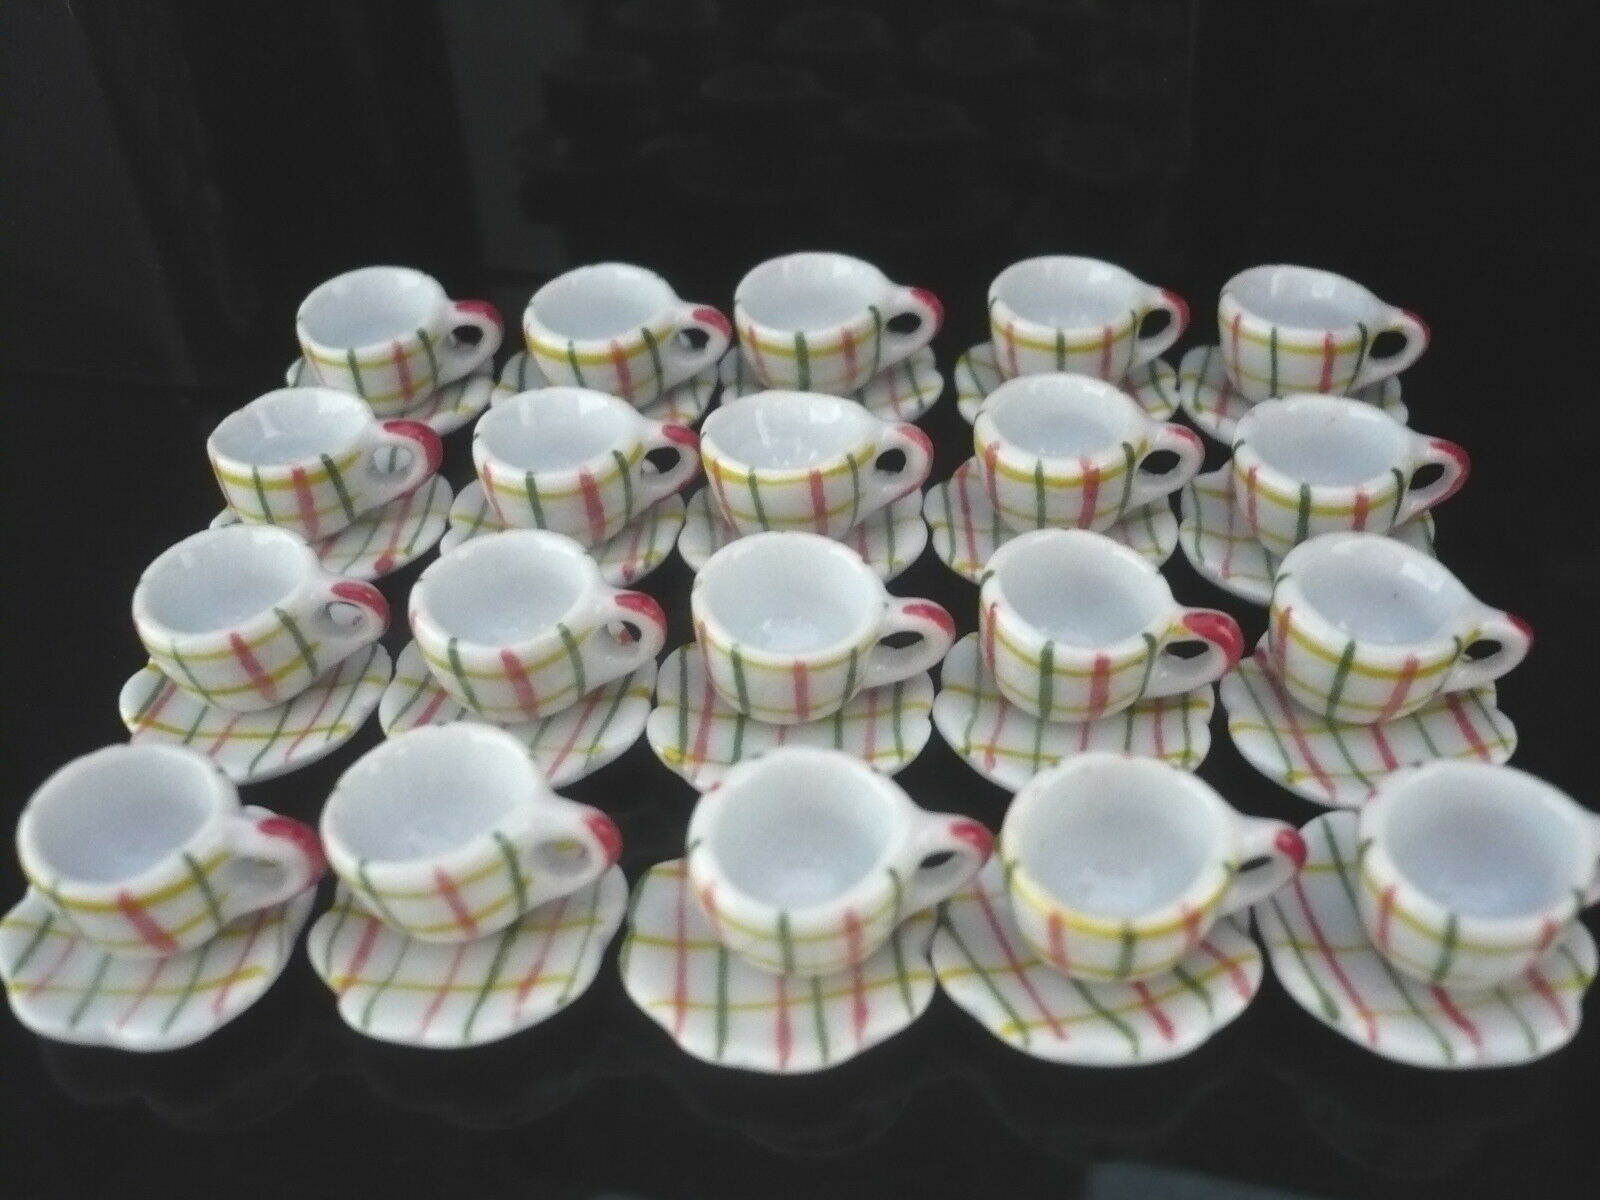 40x12 mm Mix Color Coffee cup and Saucer Dollhouse Miniatures Supply Deco